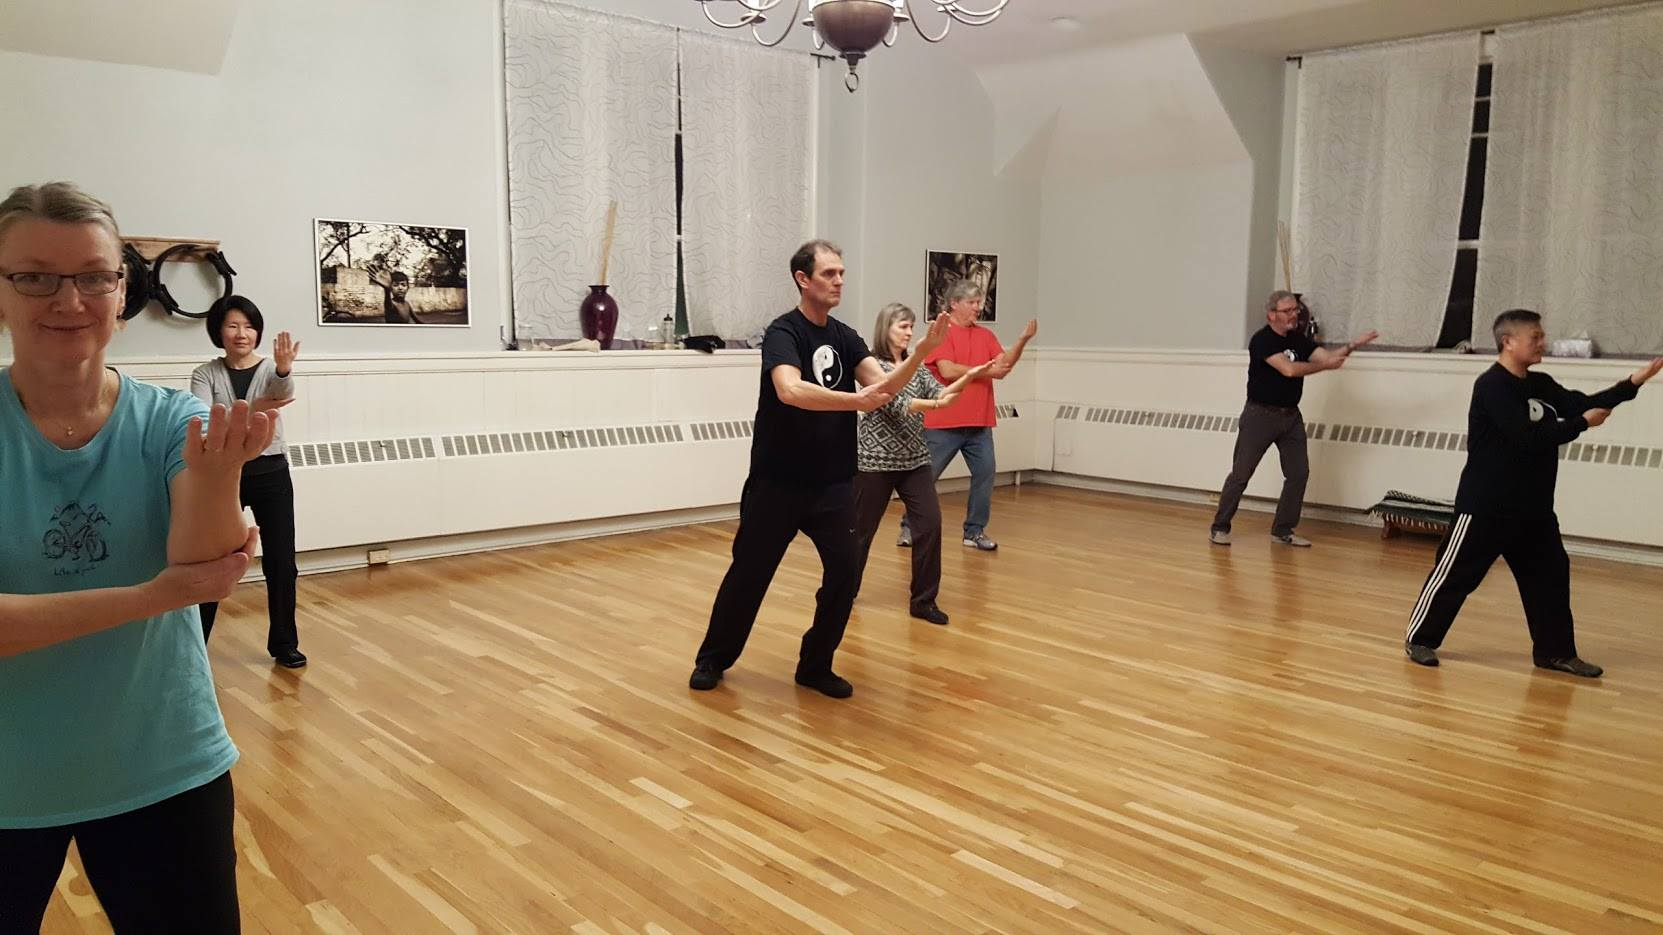 http://swimmingdragontaichi.com/wp-content/uploads/2017/02/tai-chi-class4.jpg